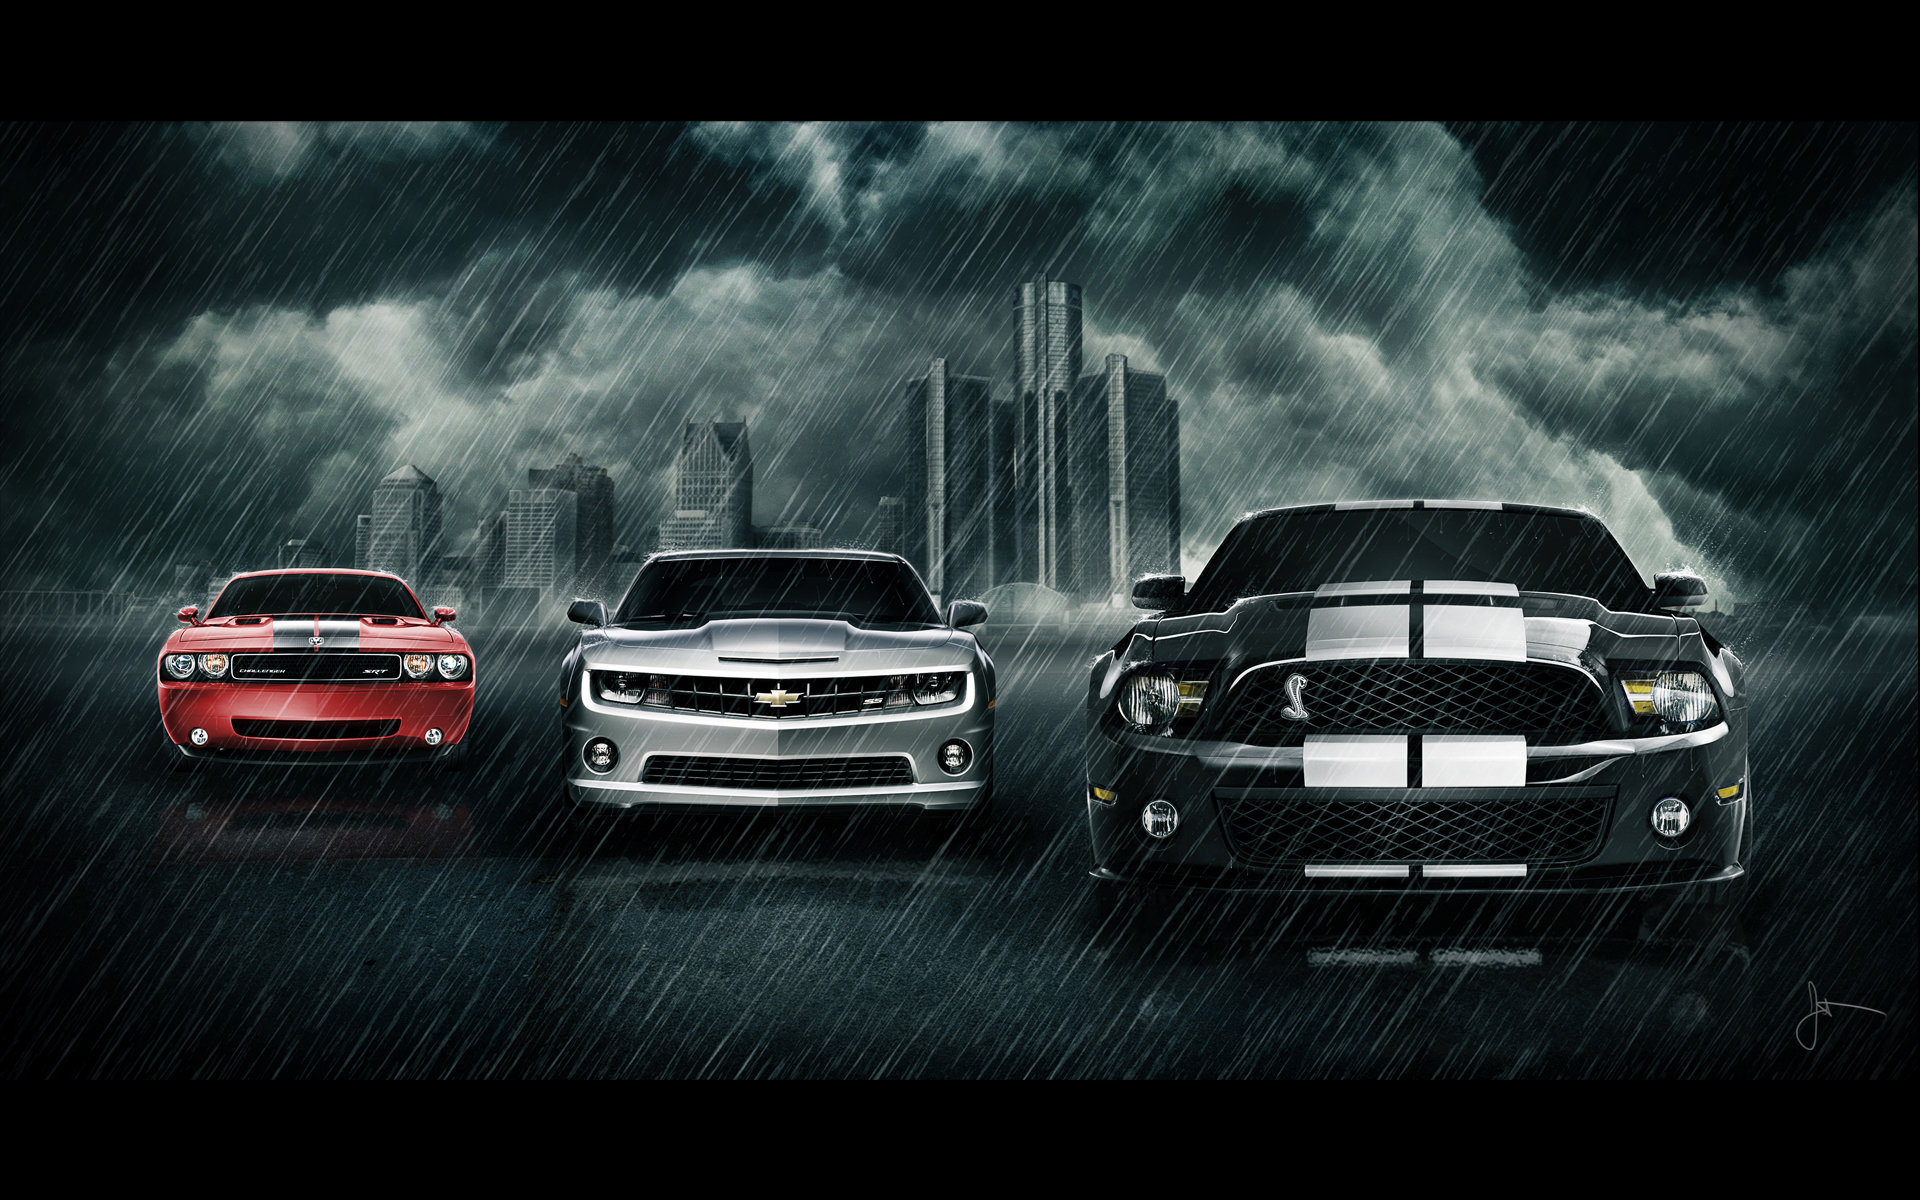 Download Hd 1920x1200 Cool Cars PC Wallpaper ID343737 For Free